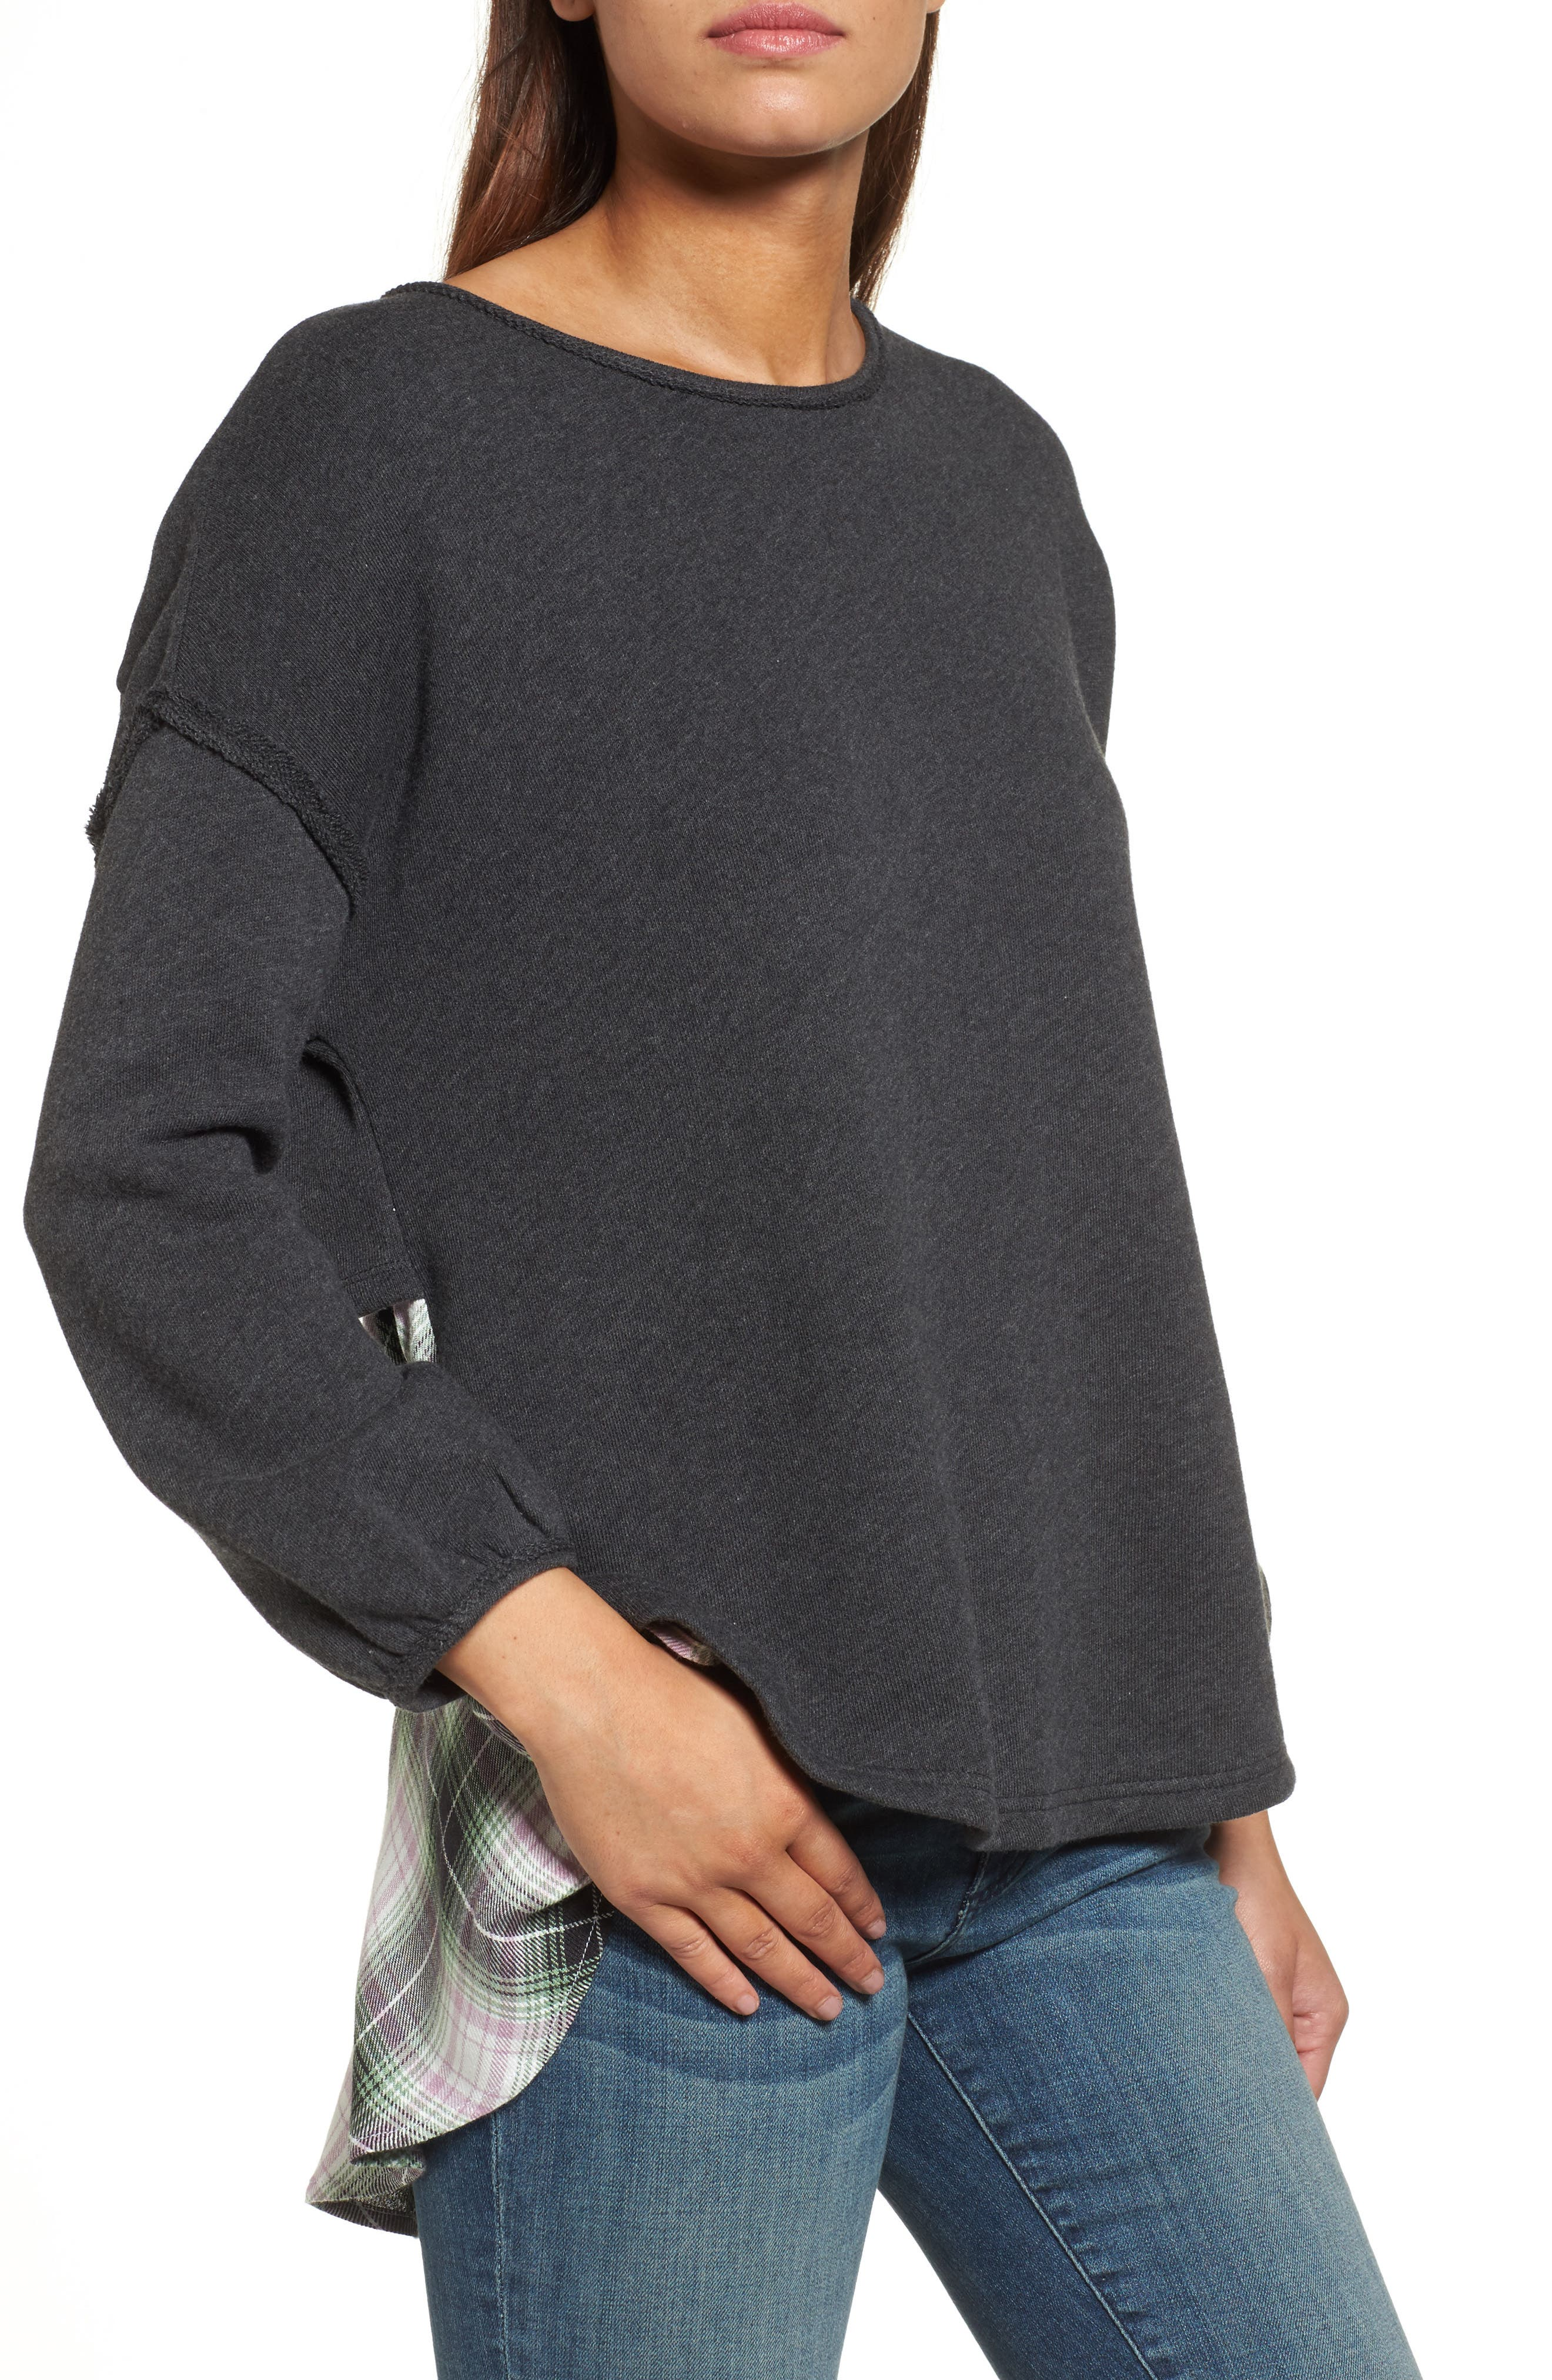 Main Image - Caslon® Layered Look Sweatshirt